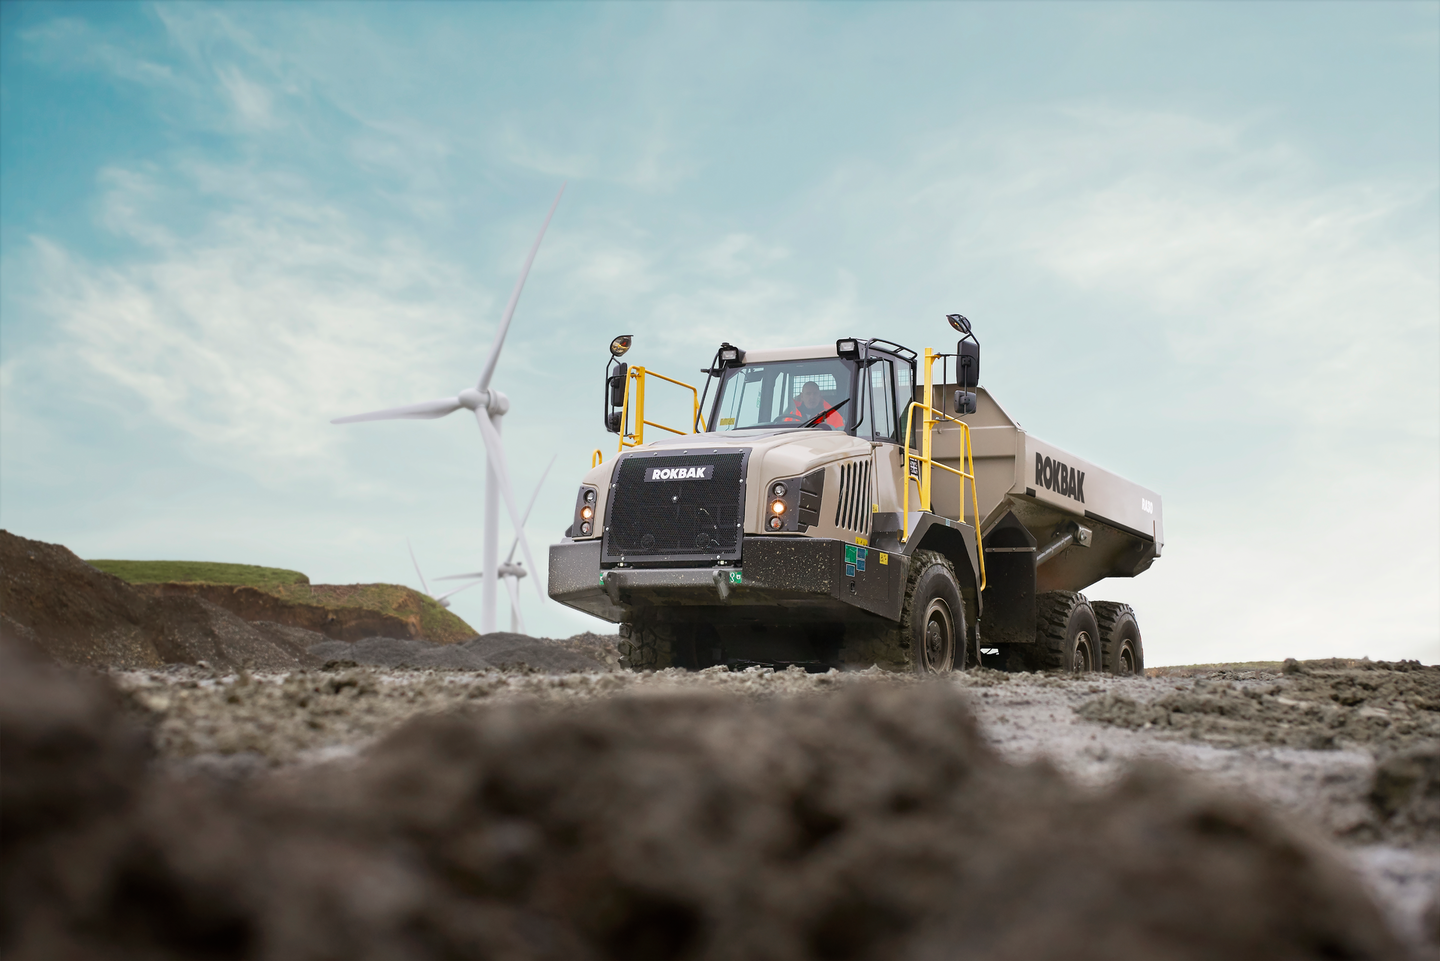 Volvo says the two Rokbak models, the the 30.9-ton RA30 and the 41.9-ton RA40, offer better fuel economy, lower emissions, improved safety and greater durability than the previous Terex Truck models.